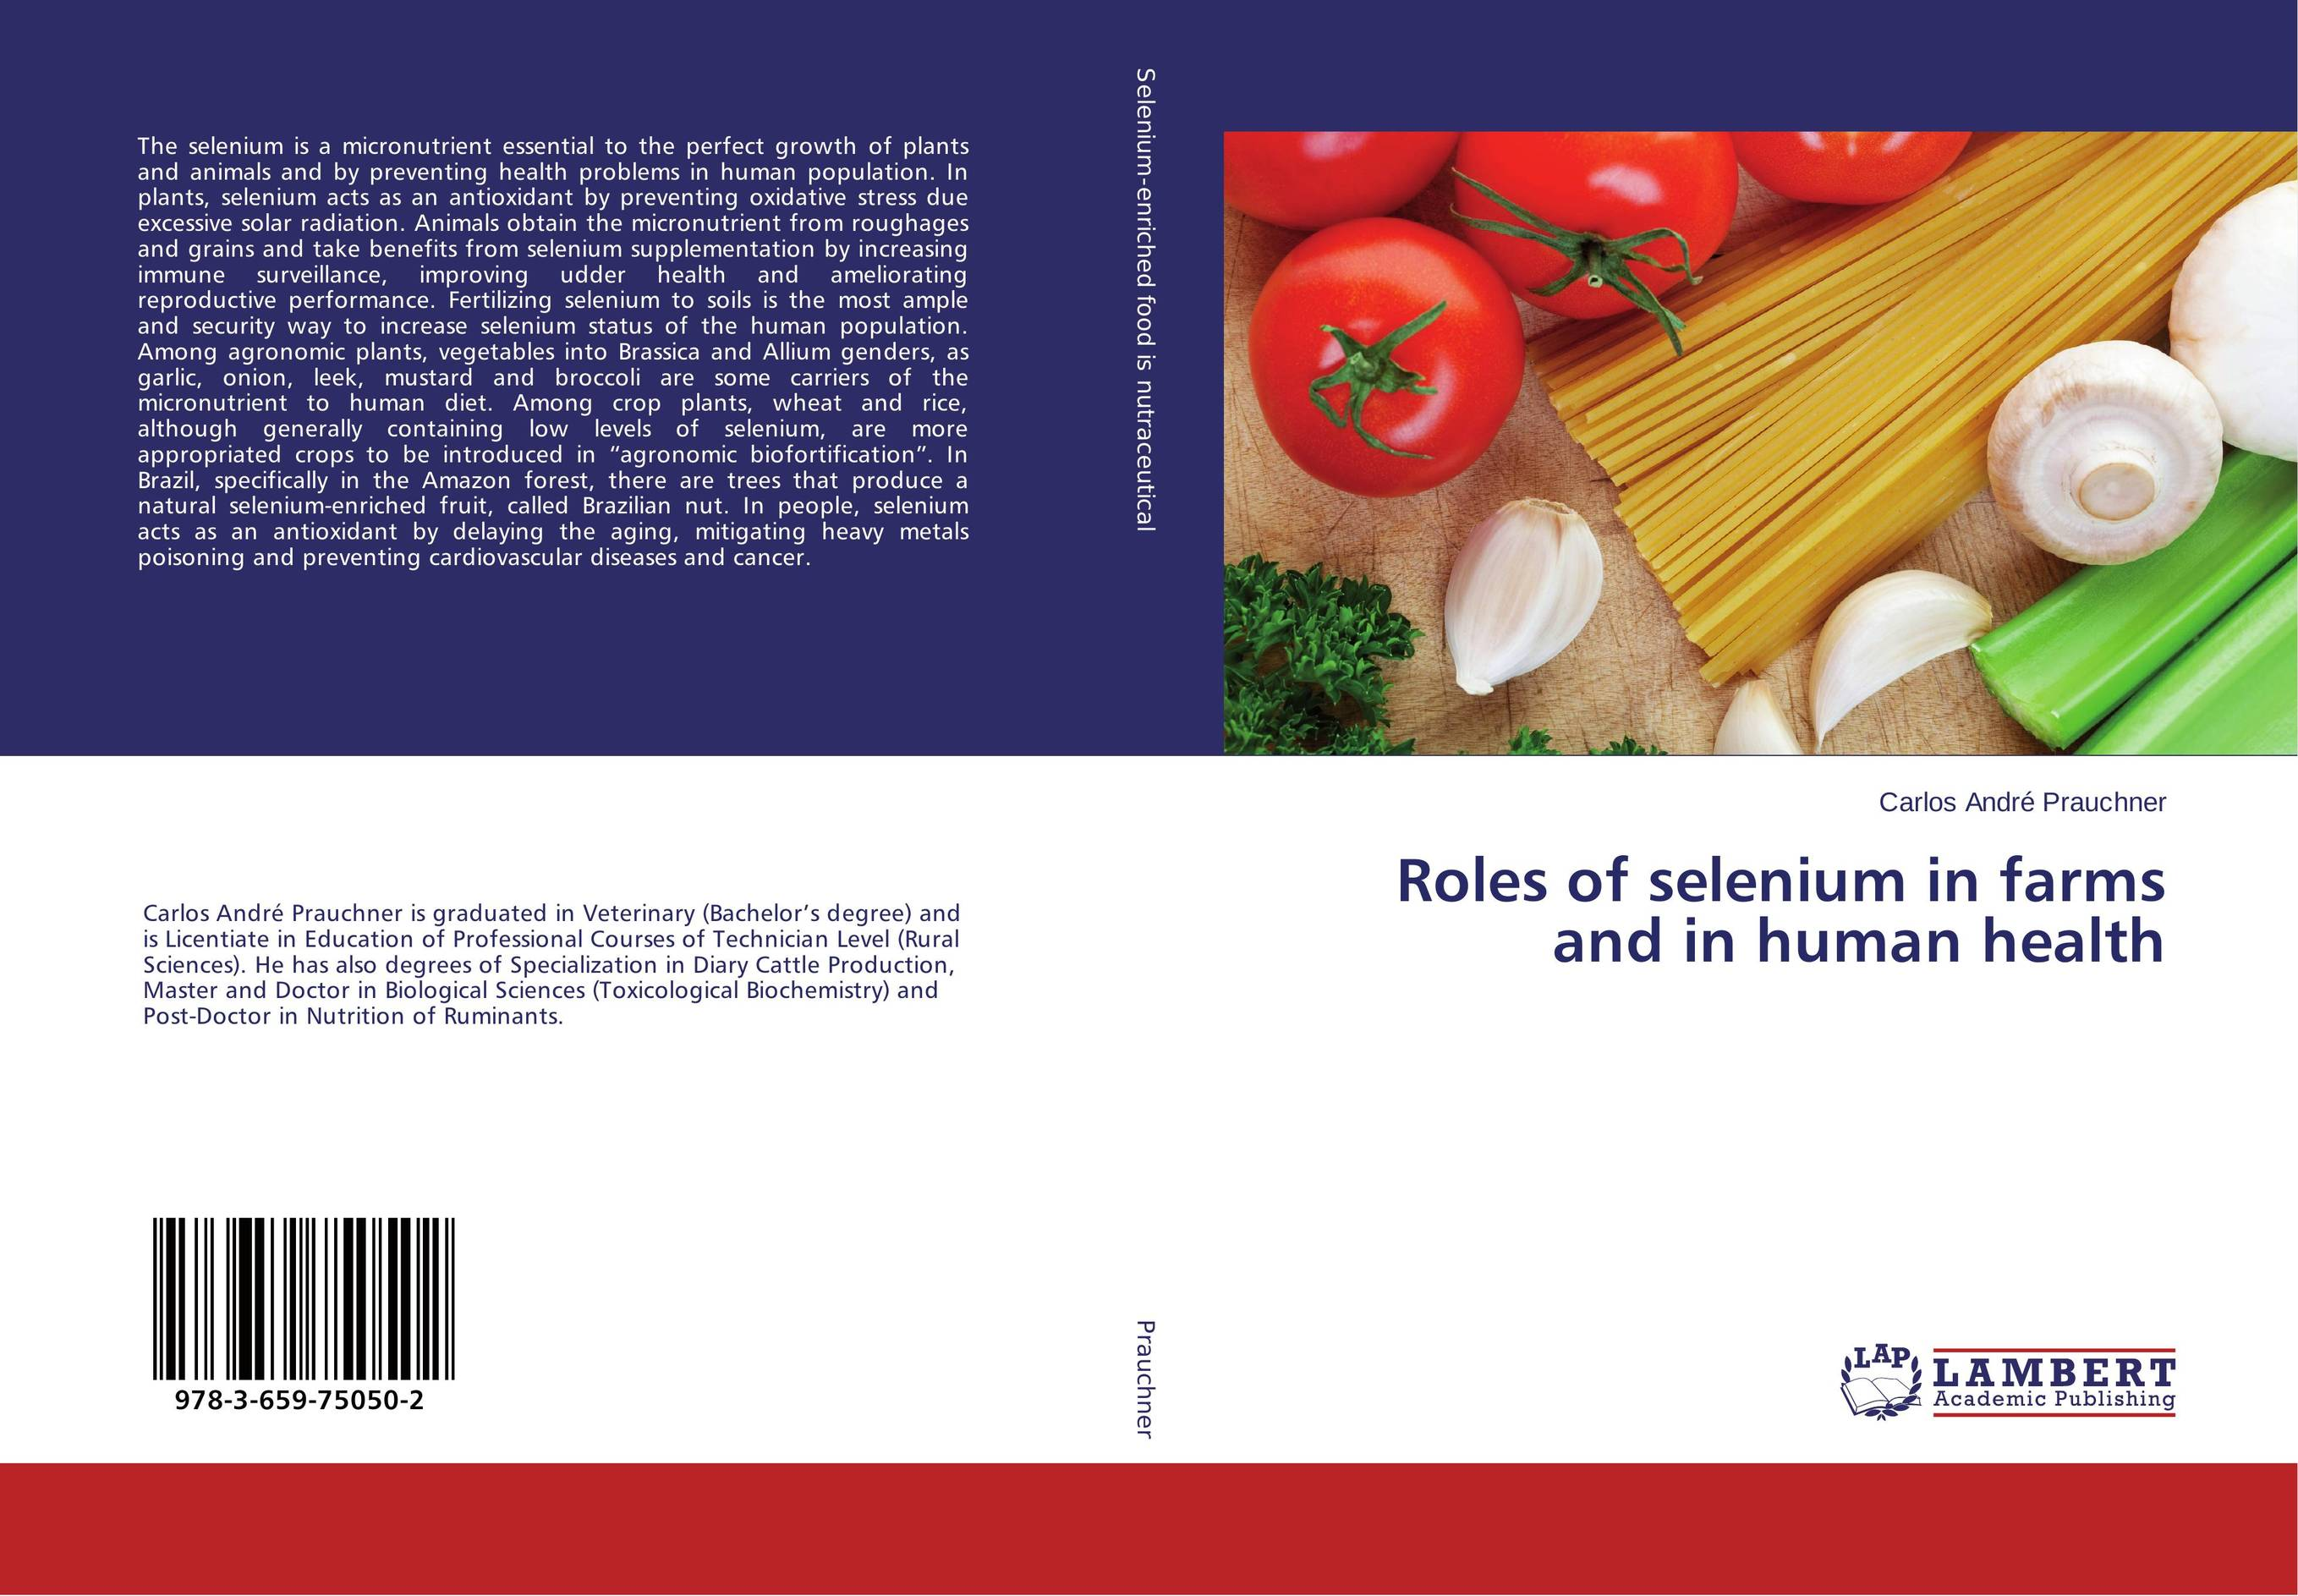 Roles of selenium in farms and in human health roles of selenium in farms and in human health